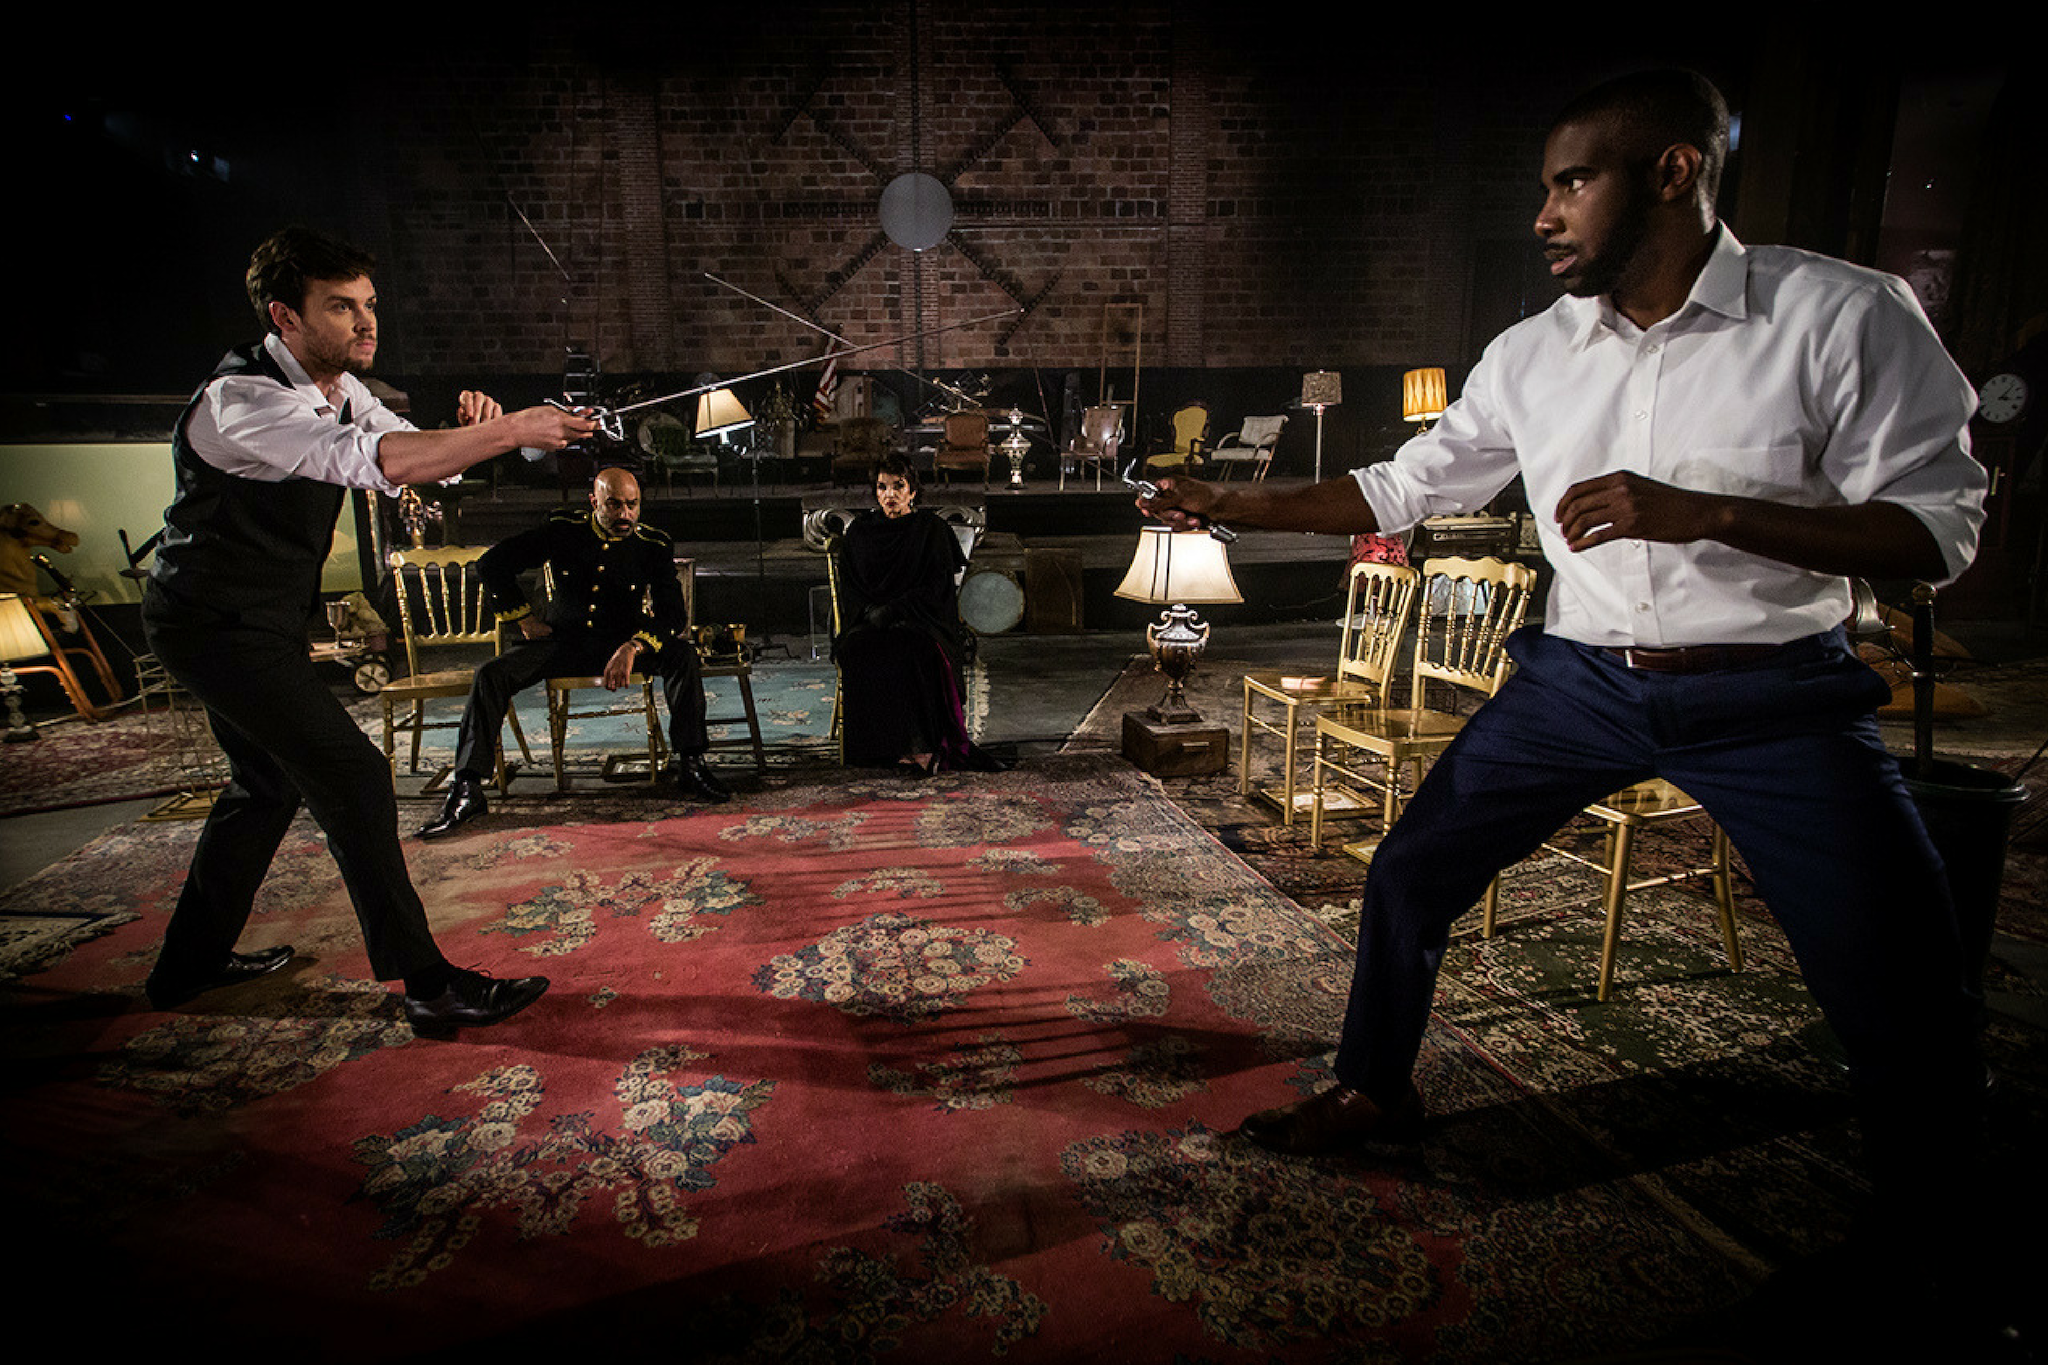 Jack Cutmore-Scott (Hamlet), Faran Tahir (Claudius), Brooke Adams (Queen gertrude), and Desean Kevin Terry (Laertes) in Hamlet 360: Thy Father's Spirit. Photo by Matthew Niederhauser